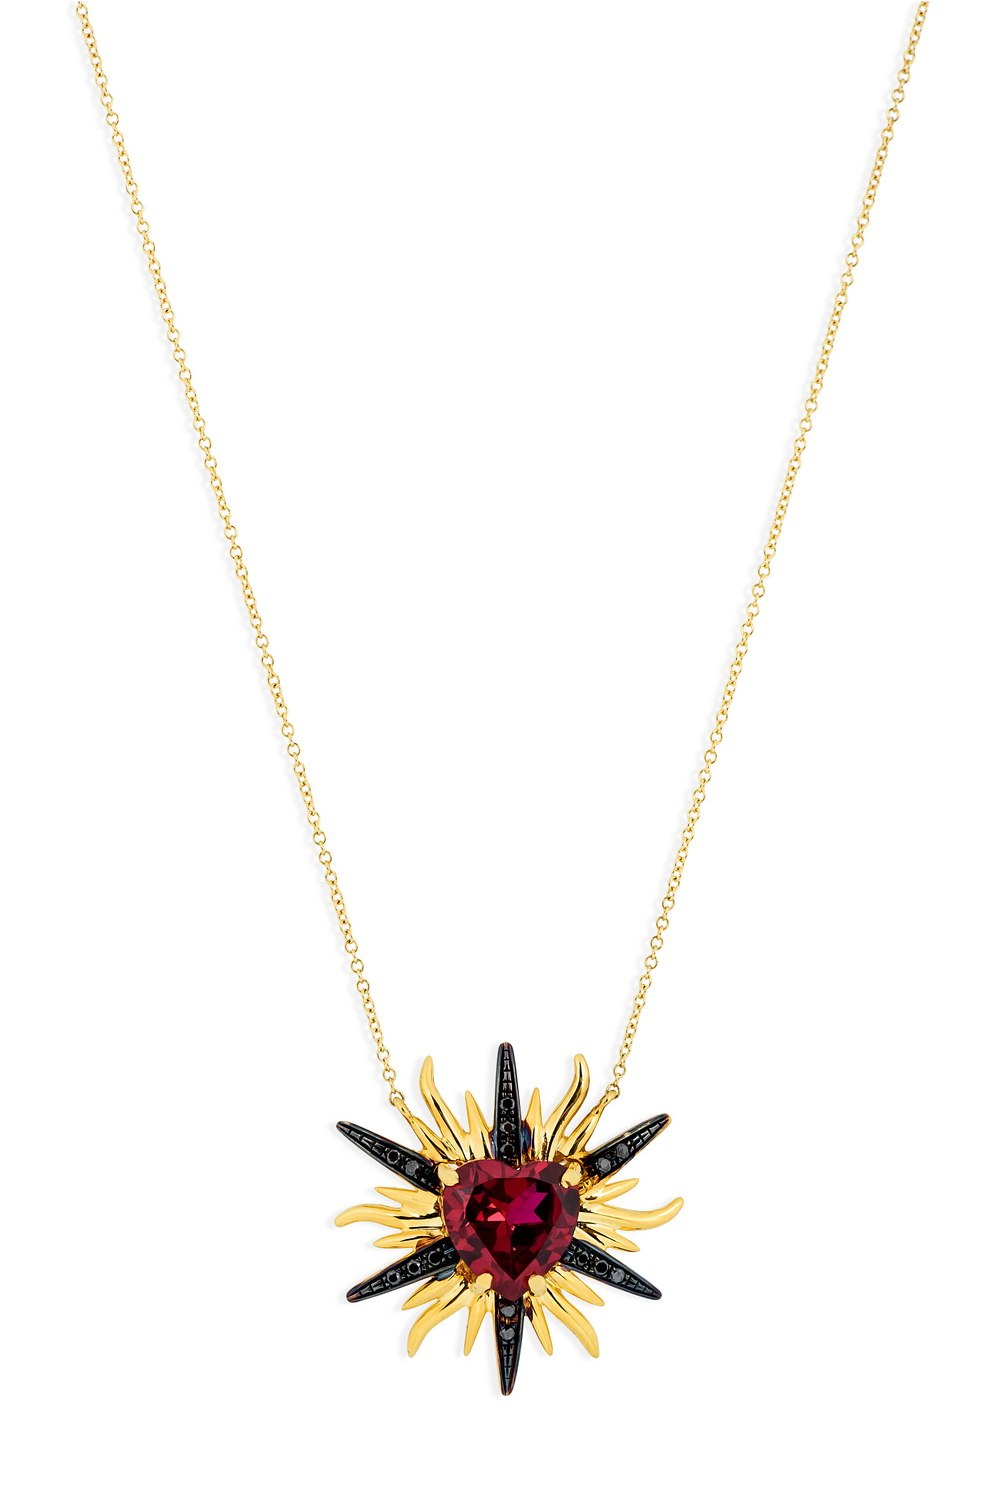 Red Heart In Yellow Gold Sun With Black Diamonds